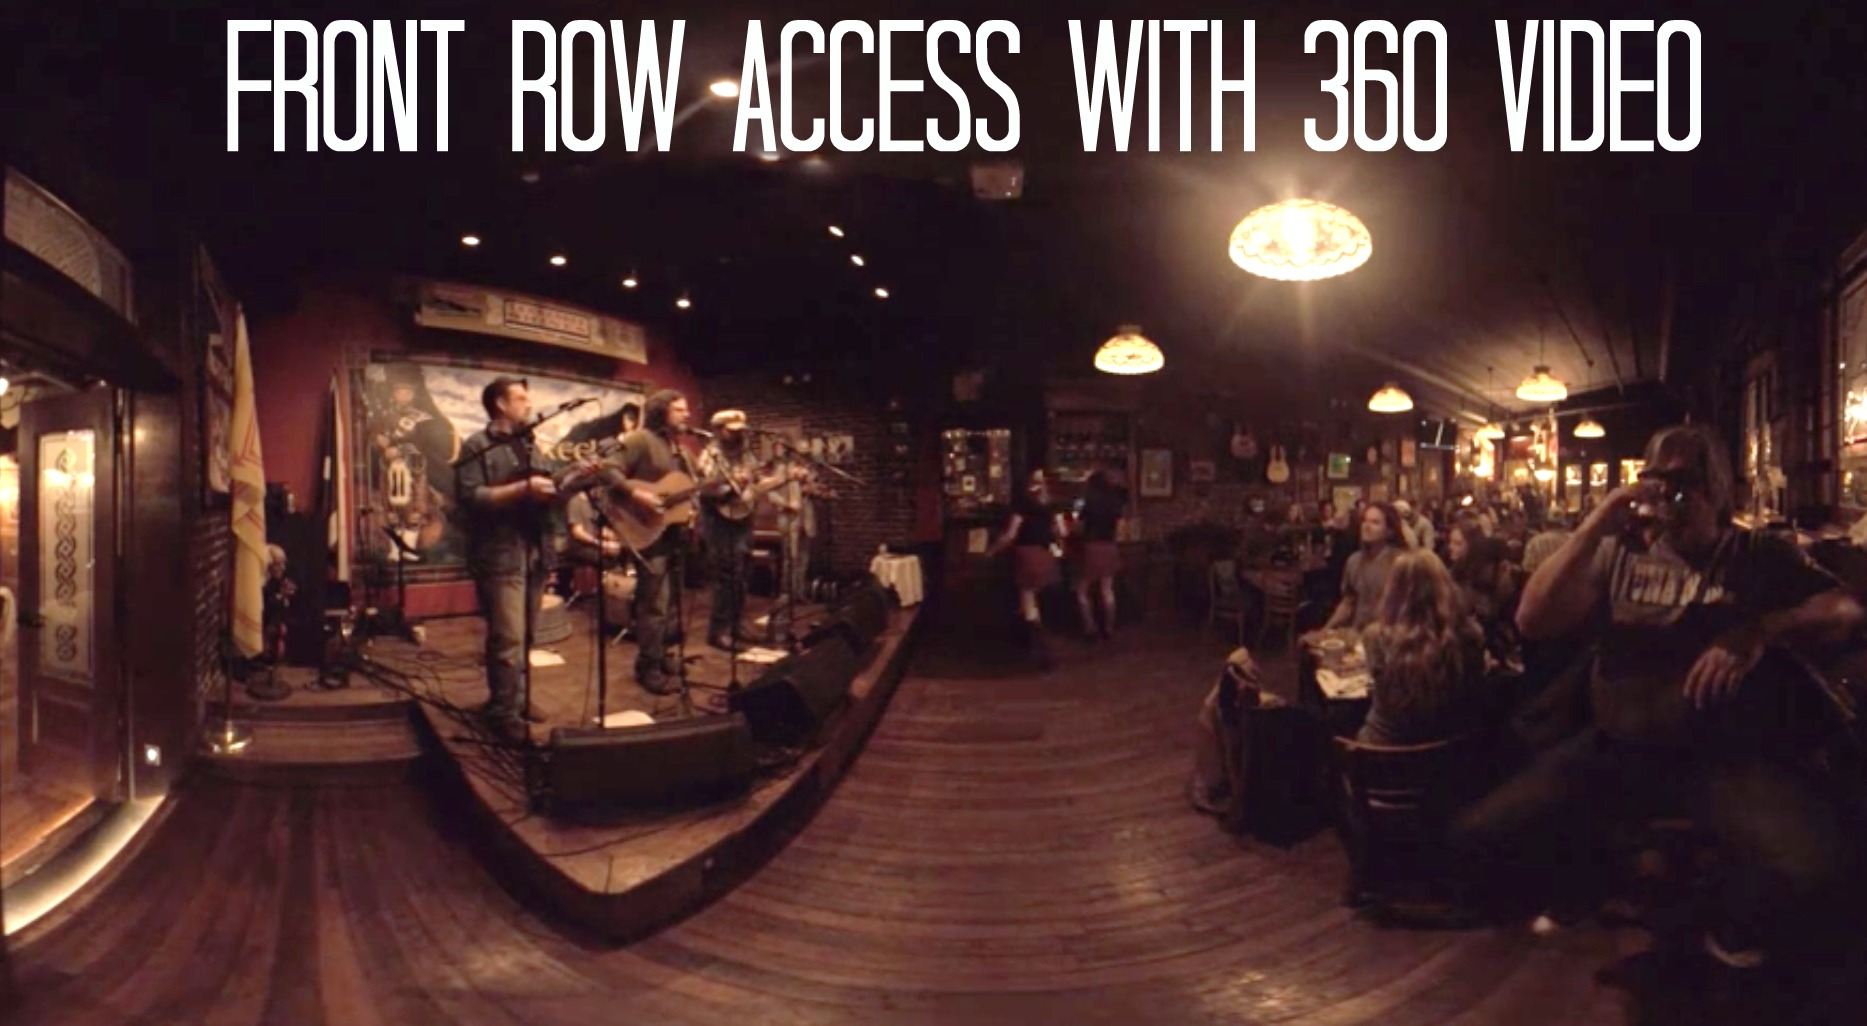 VIP Front Row Access with 360 Video